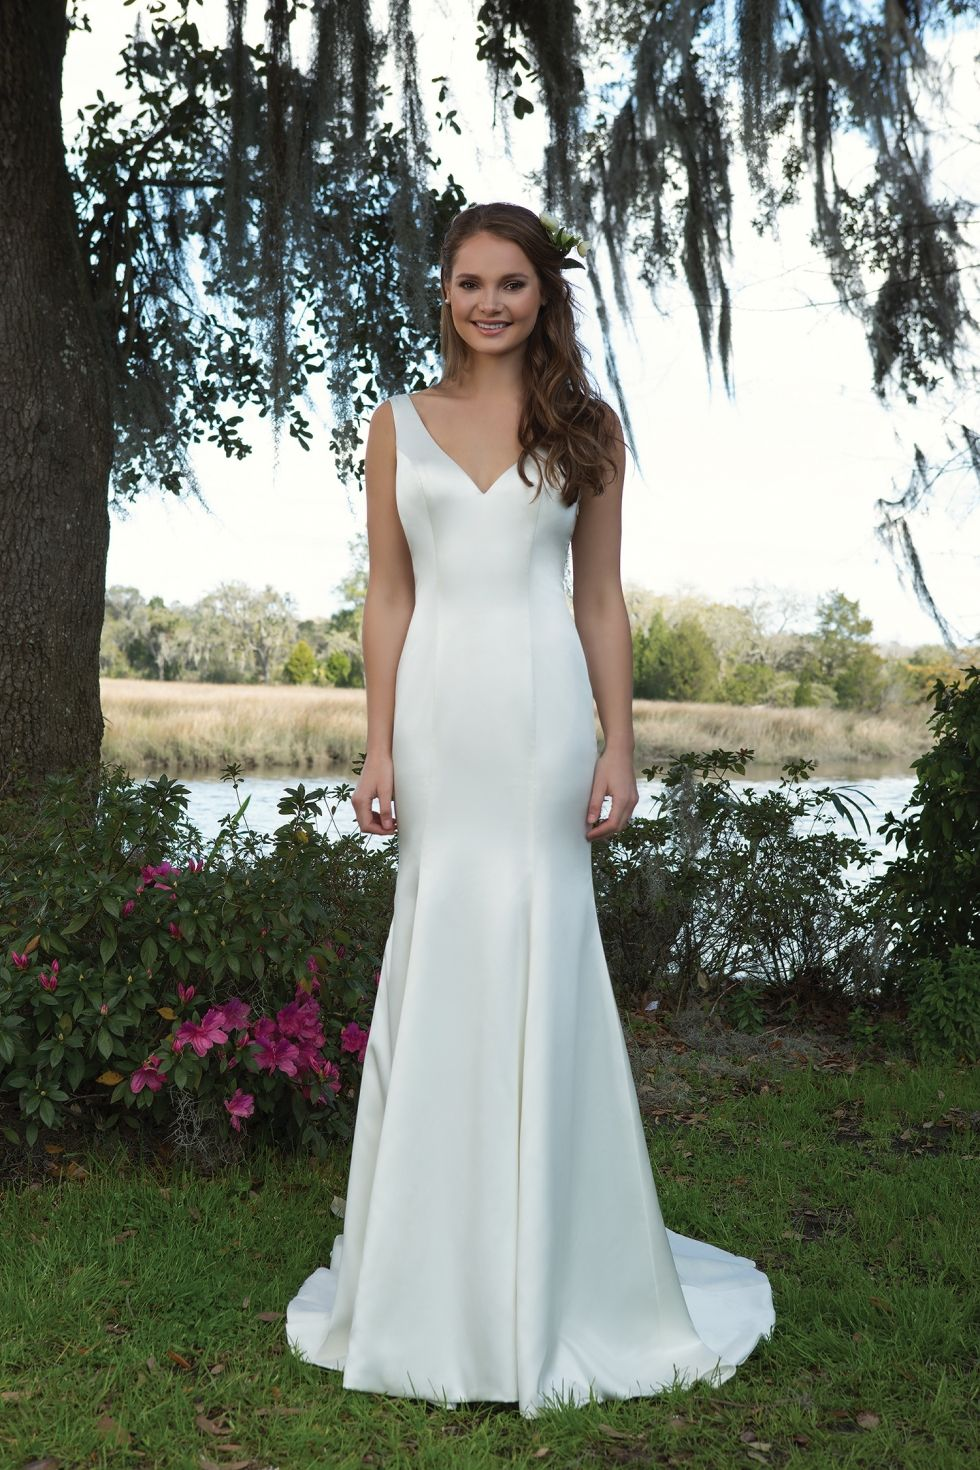 478ab5e3cf68c Stretch satin wedding dress with cowl back and fitted shape. Fit and flare  wedding gown